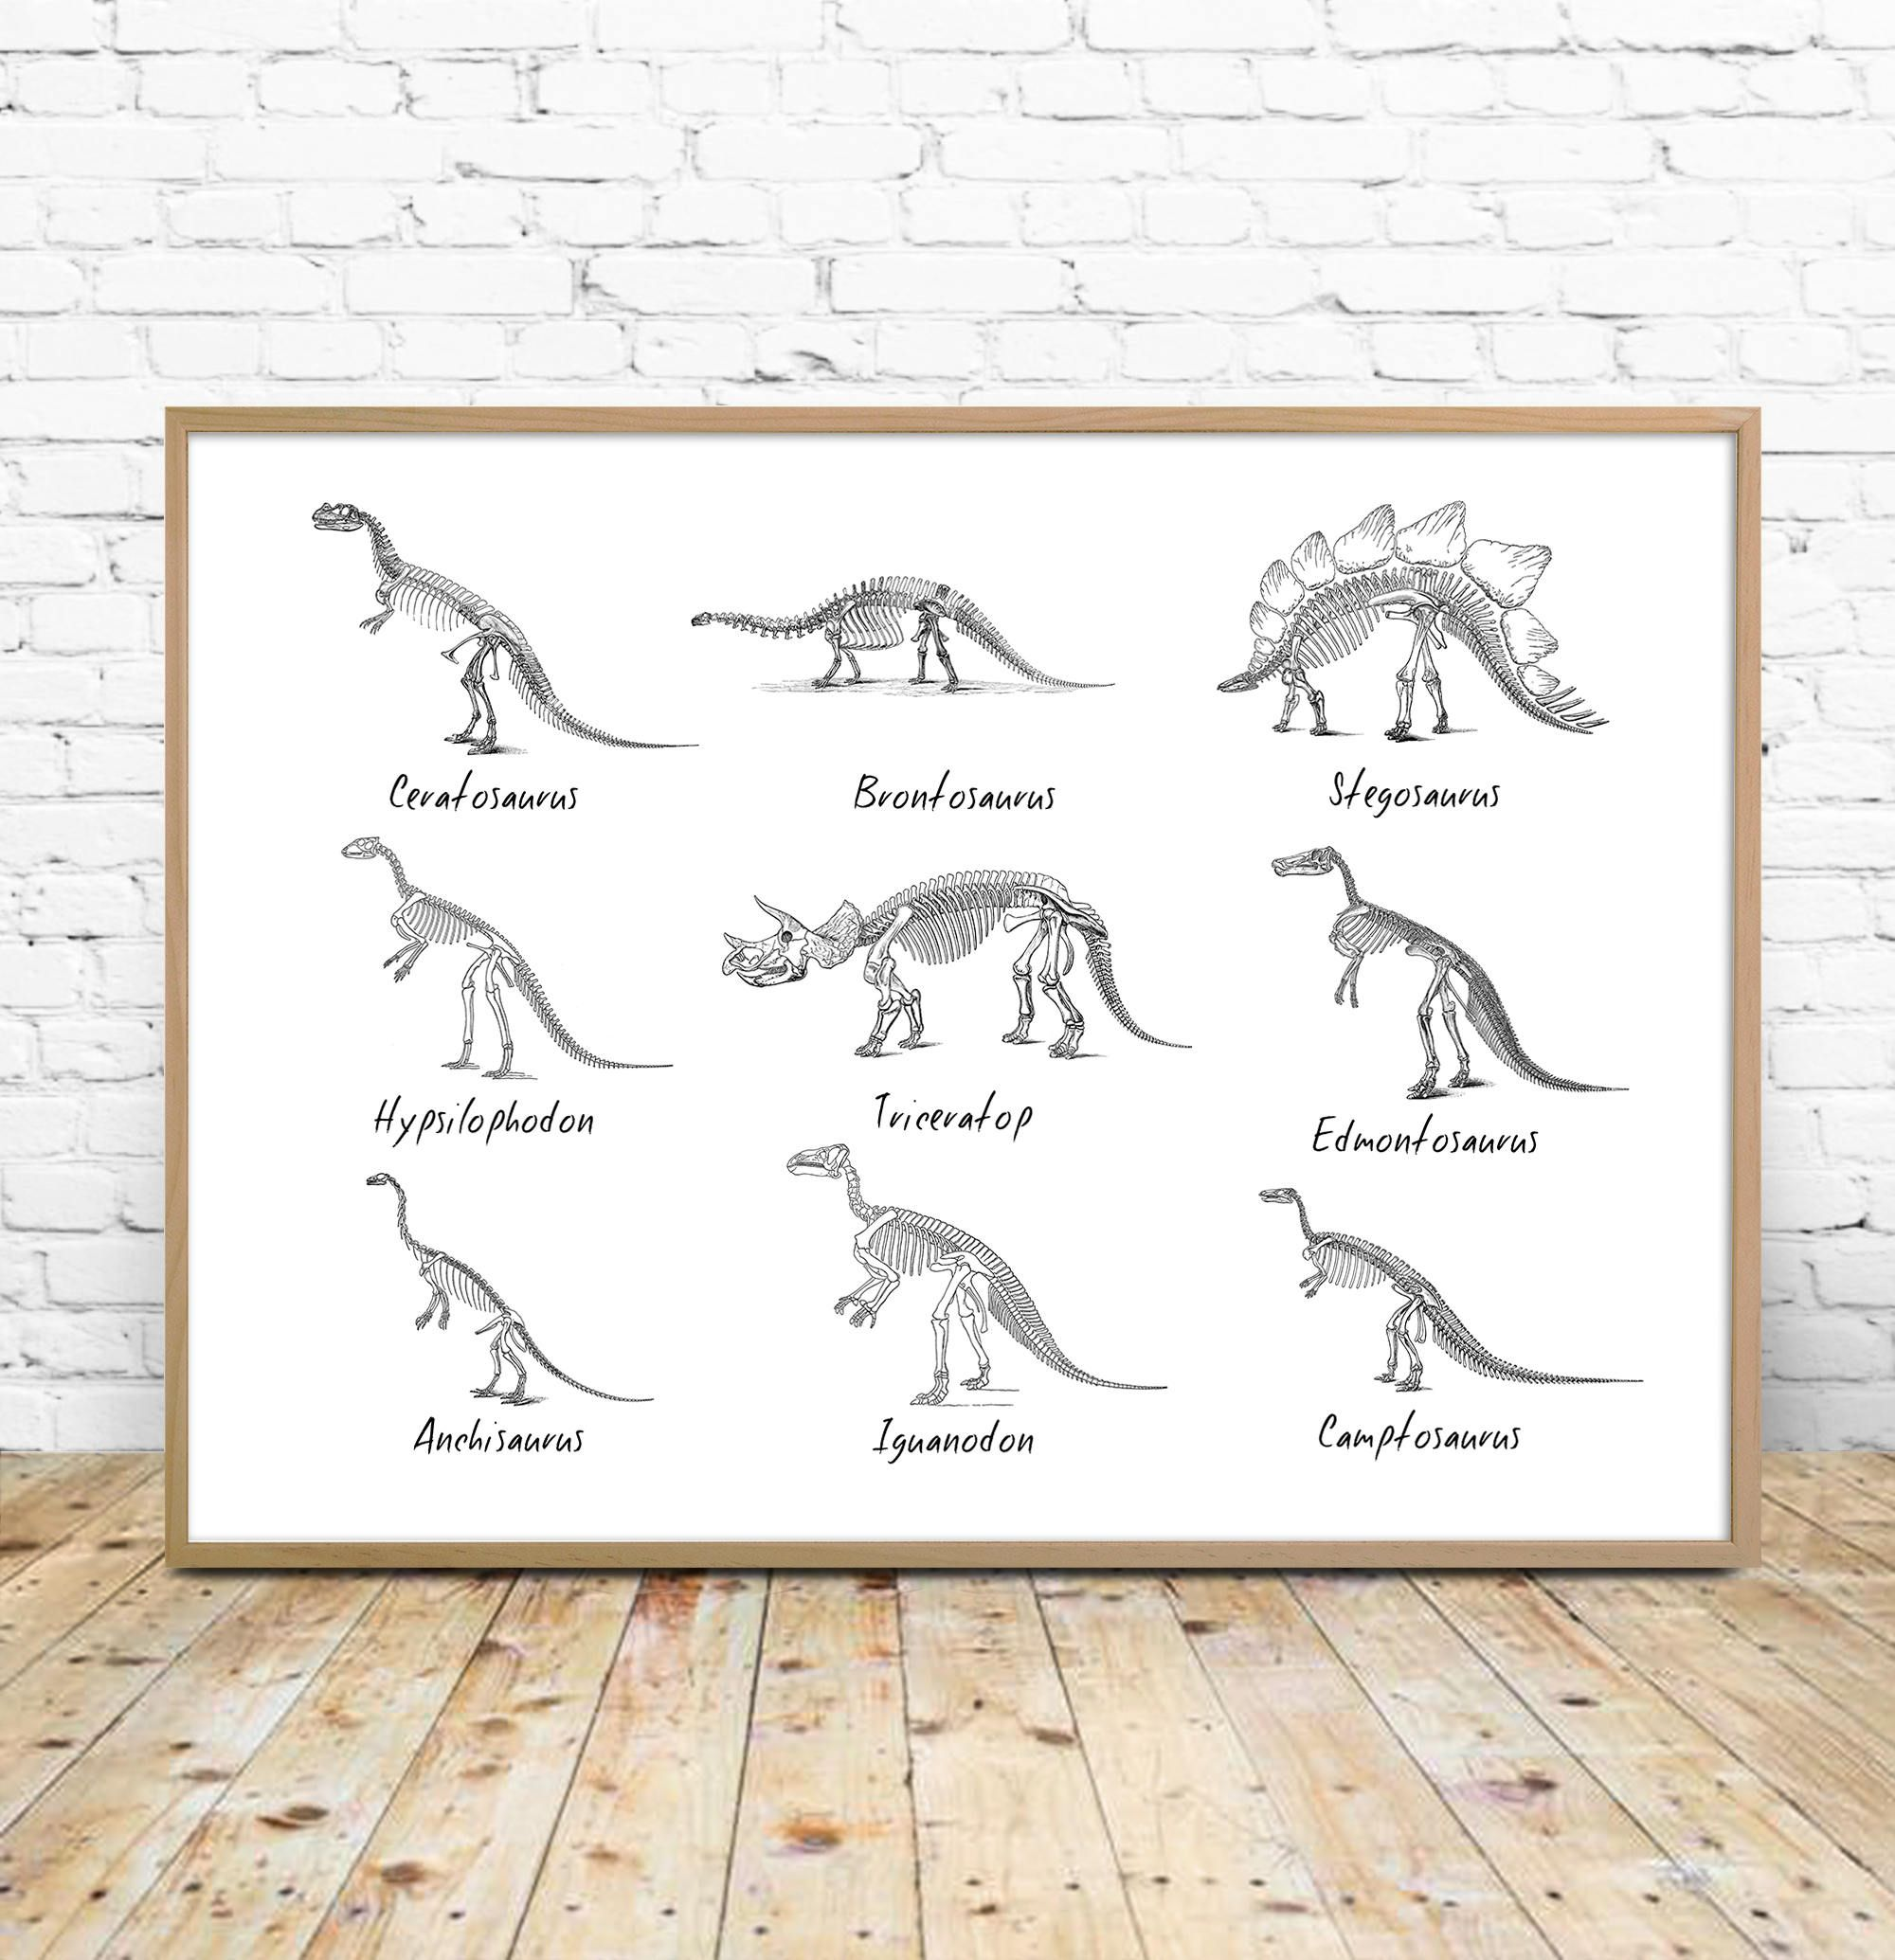 Dinosaur Art Printable, Dinosaurs chart, dinosaur list, species, paleontology printable, dinosaur decor, wall art, download, boy room print